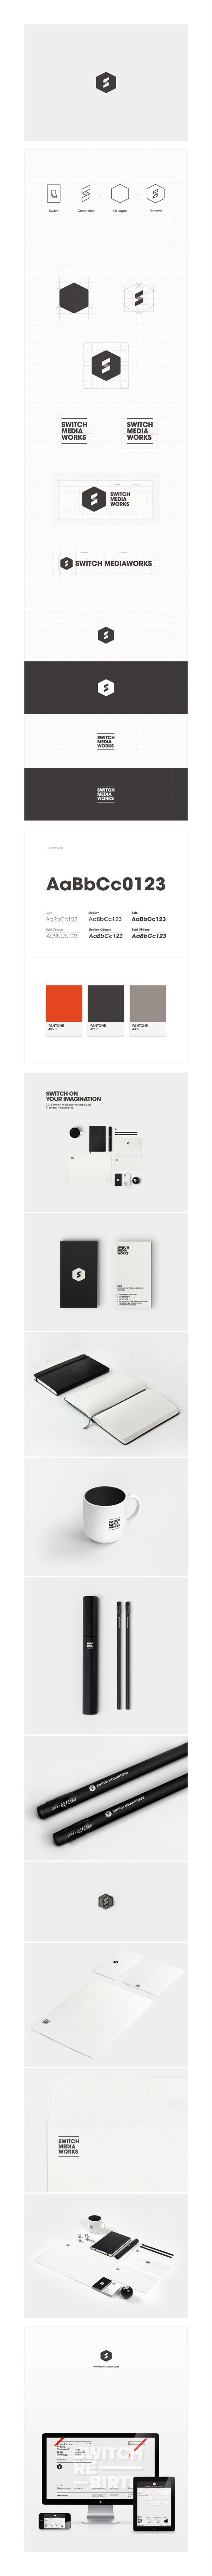 2013 brand renewal, switch mediaworks by switch mediaworks , via Behance